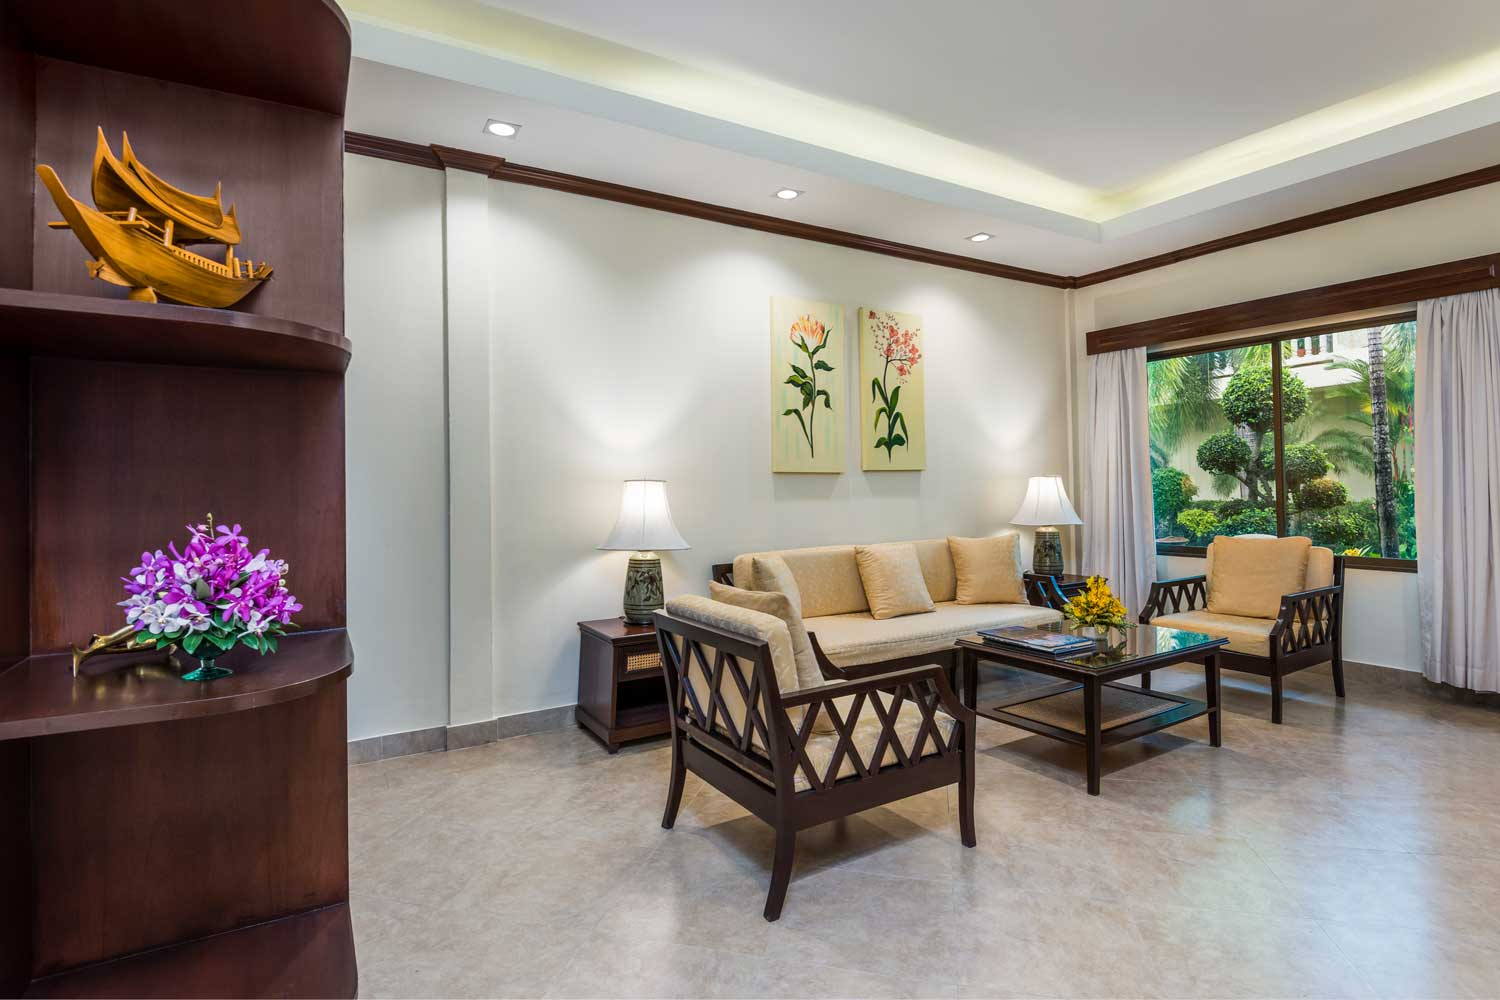 Living Room of a One-Bedroom apartment hotel room with a garden view of the Thai Garden Resort in Pattaya, Thailand